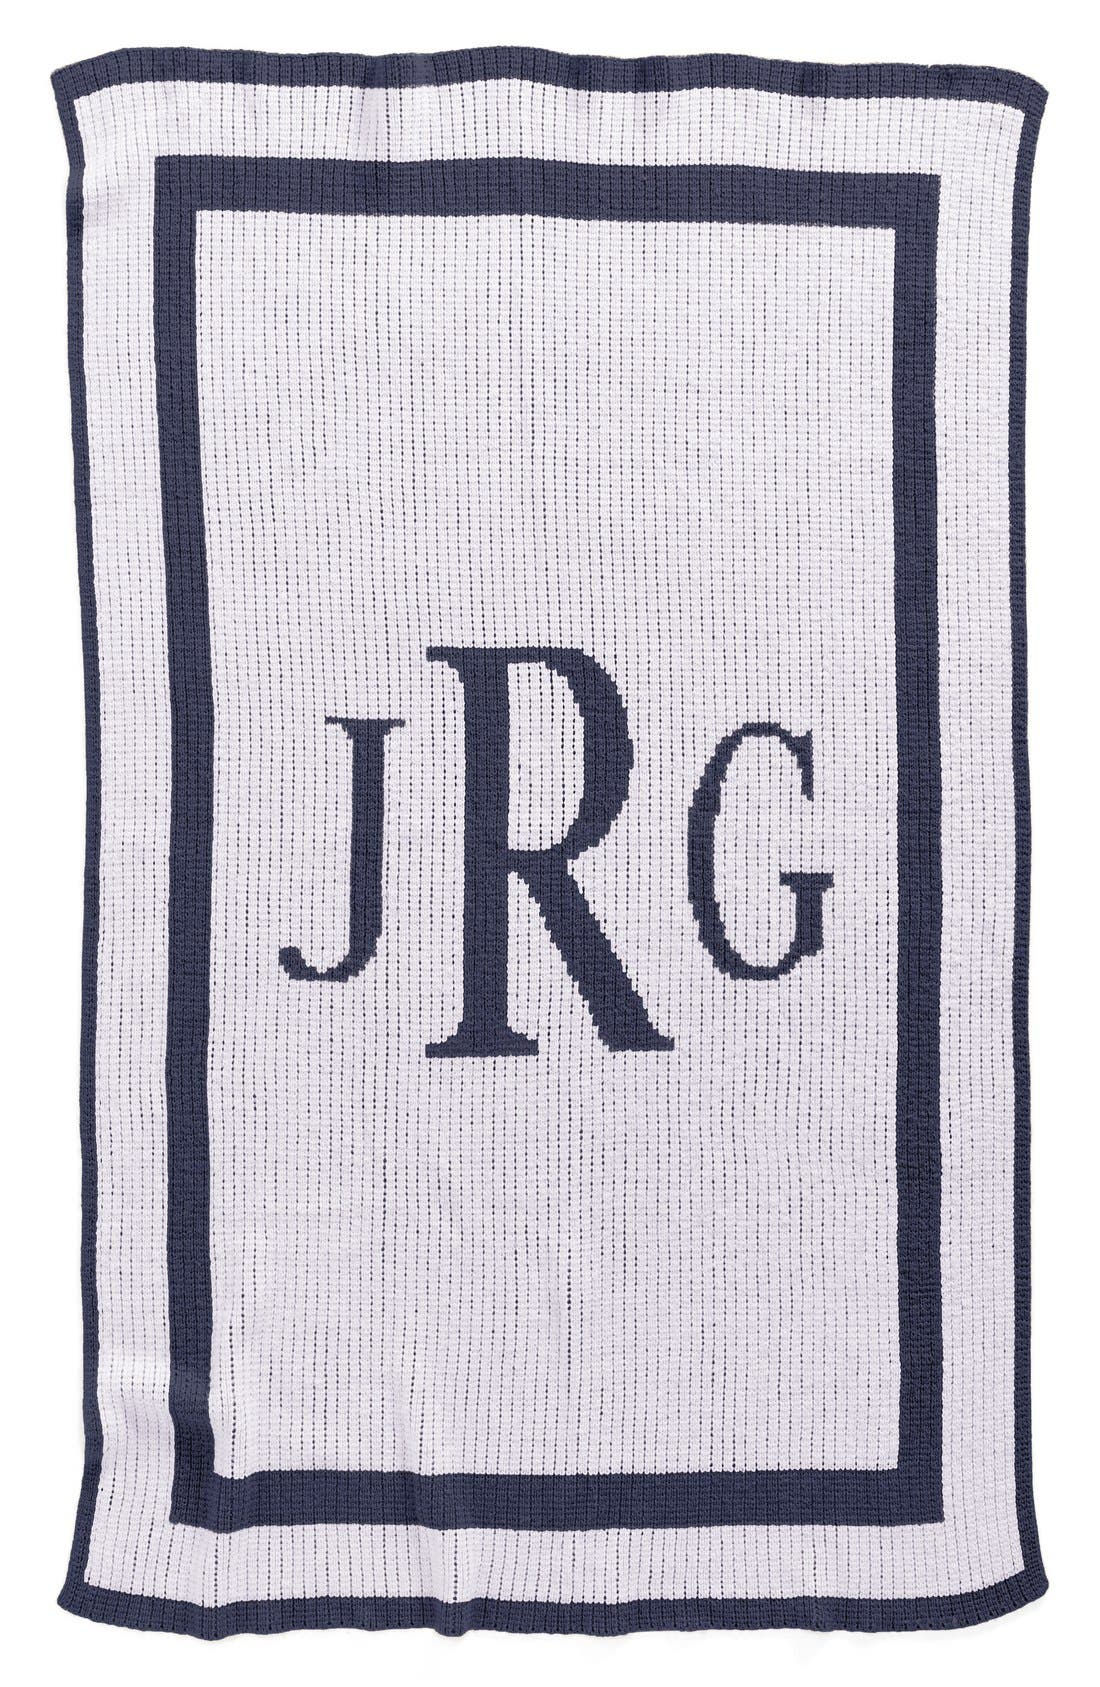 'Classic Monogram' Personalized Crib Blanket,                         Main,                         color, Navy/ White